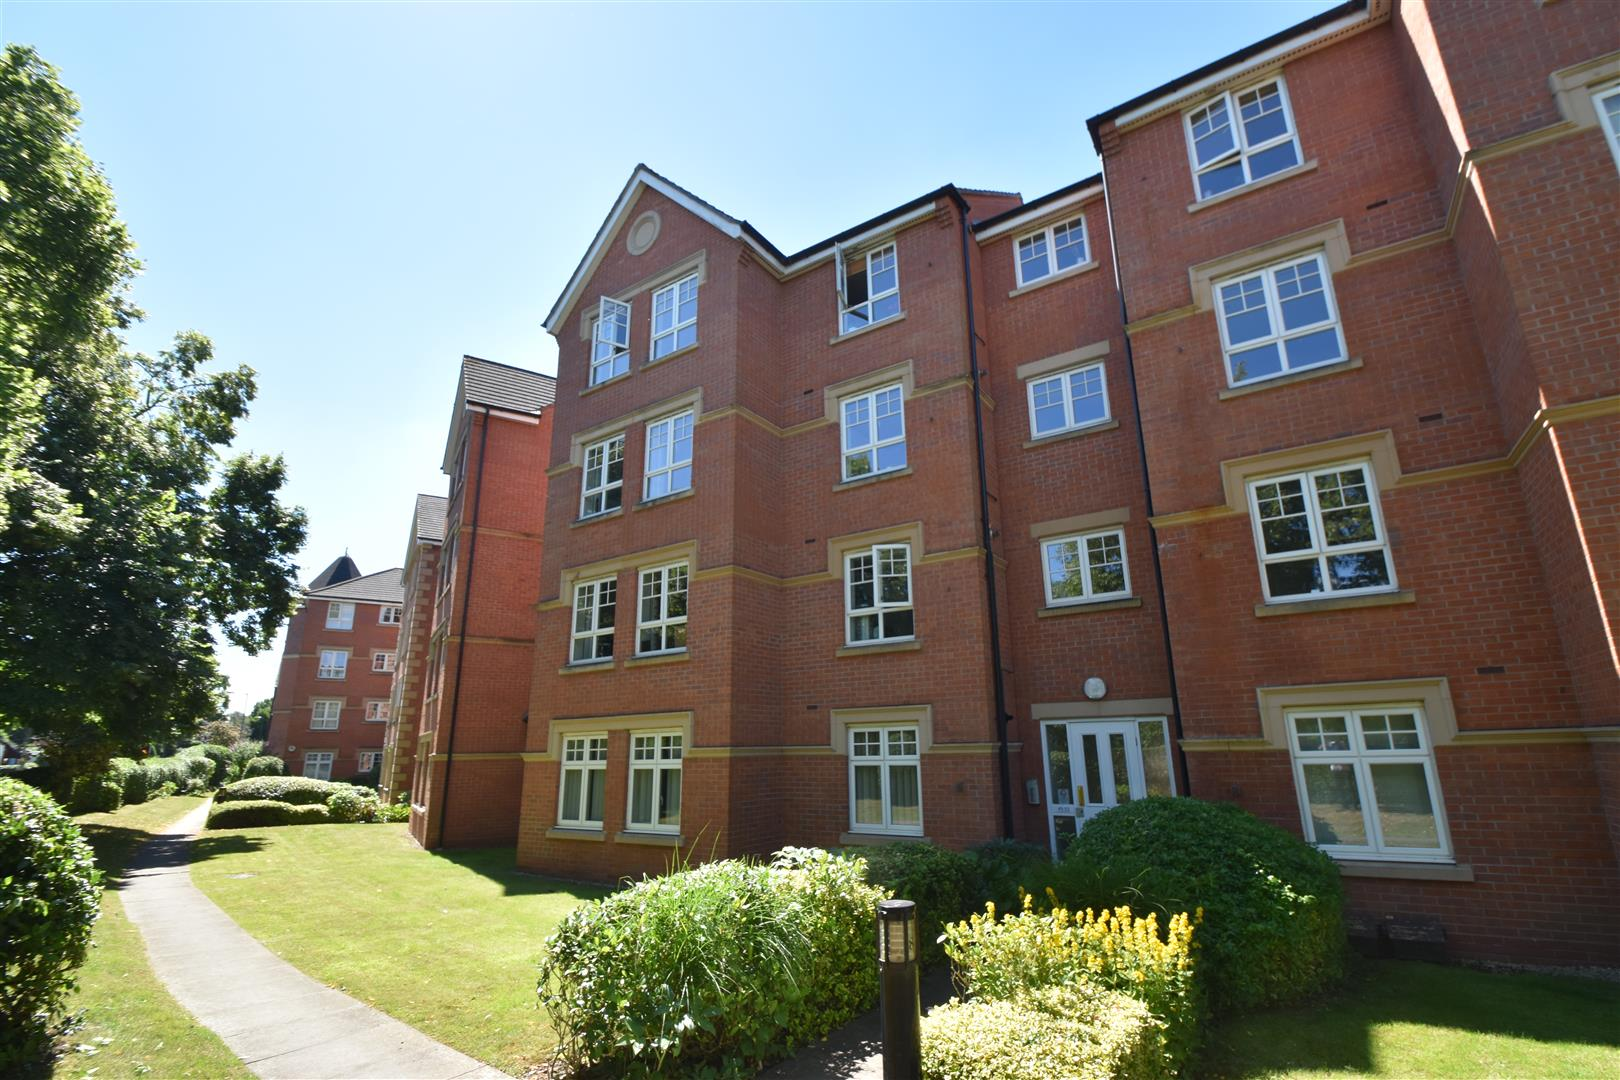 2 Bedrooms Ground Flat for sale in St. Andrews Road, Droitwich